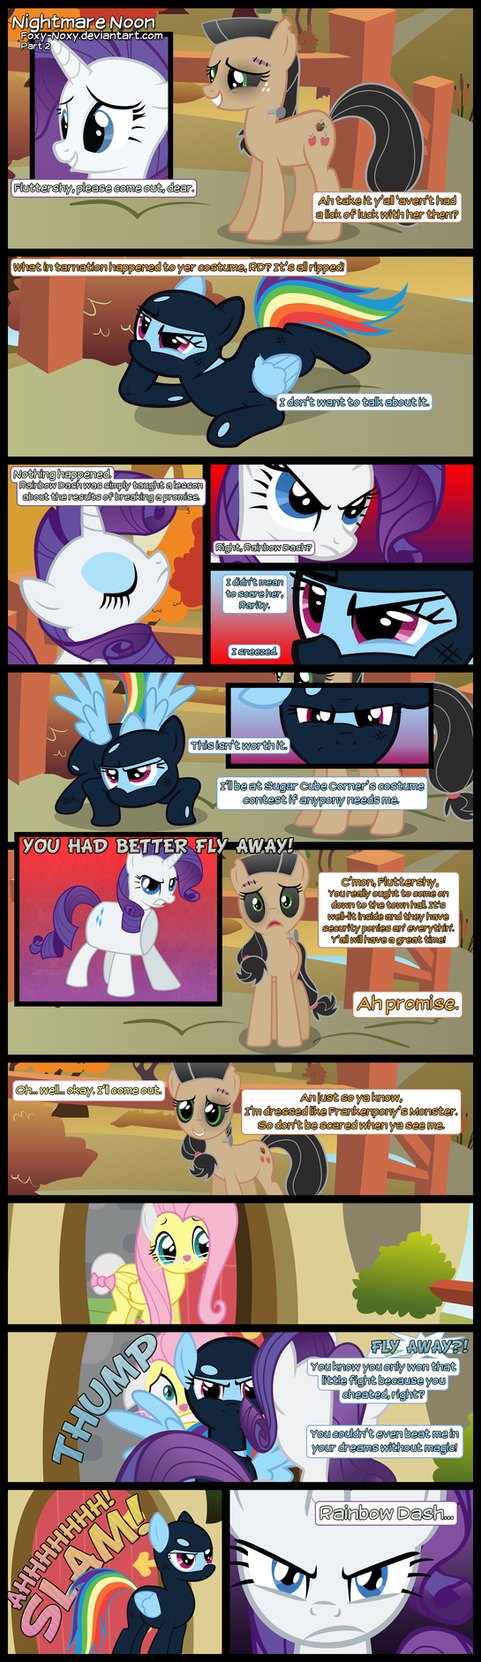 Nightmare Noon - Part 2 by Foxy-Noxy